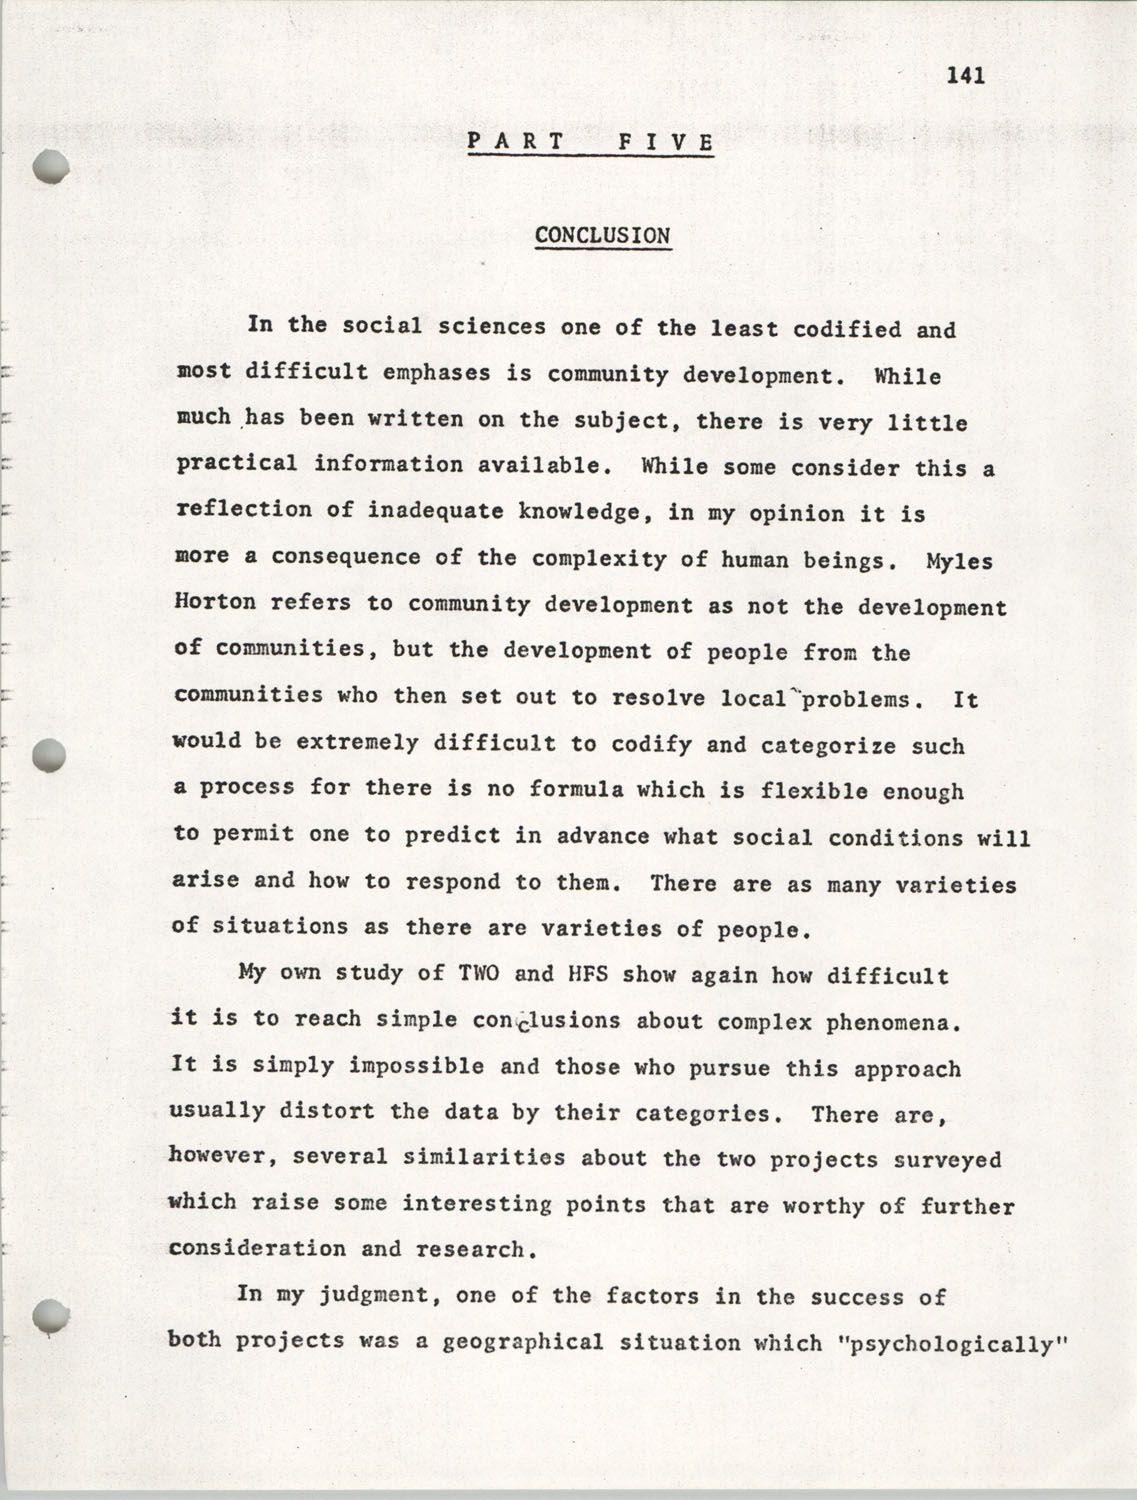 Citizen Participation. Democracy and Social Change, December 1, 1969, Page 141